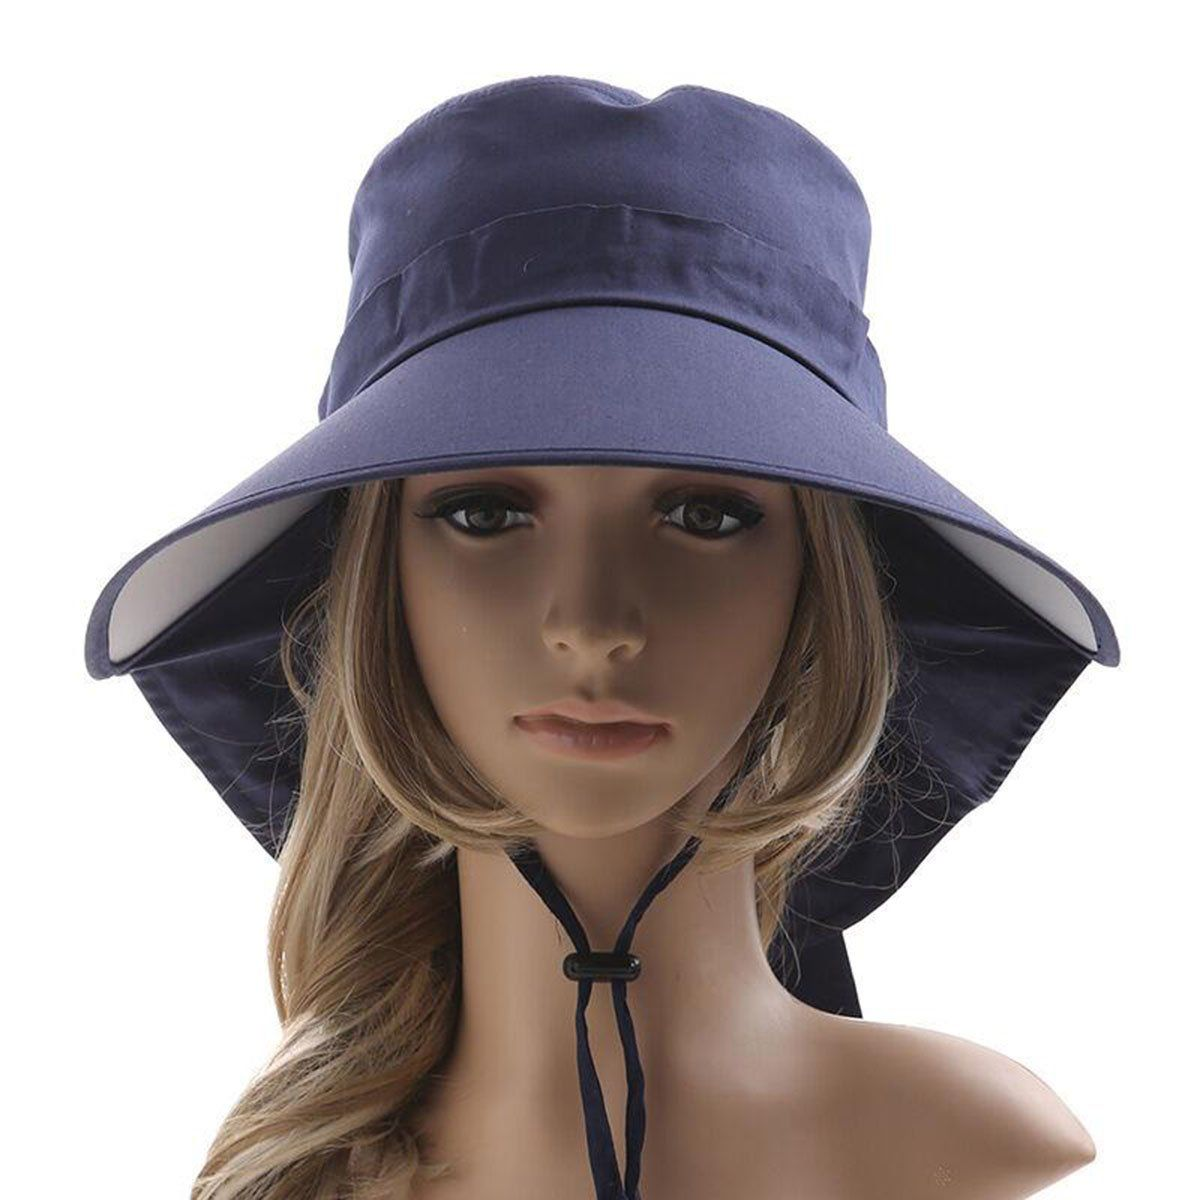 Ls Lady Womens Summer Flap Cover Cap Cotton Anti-UV UPF 50+ Sun Shade Hat  With Bow. Adjustable Hat (One Size 55713cfc40